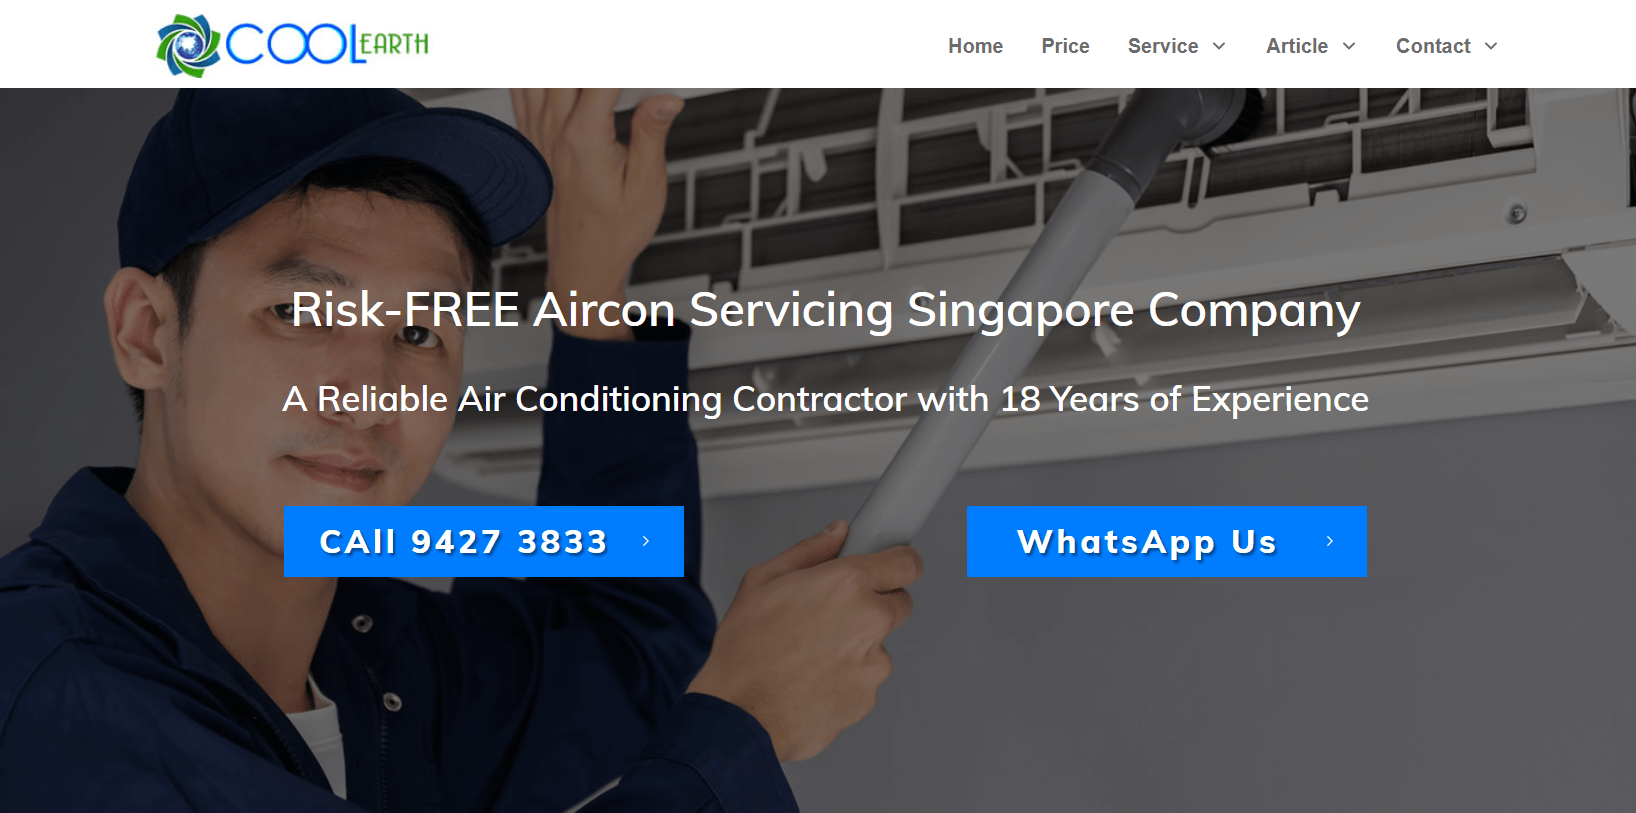 Cool Earth Aircon Services is The 10 Best Air-con Services in Singapore this year